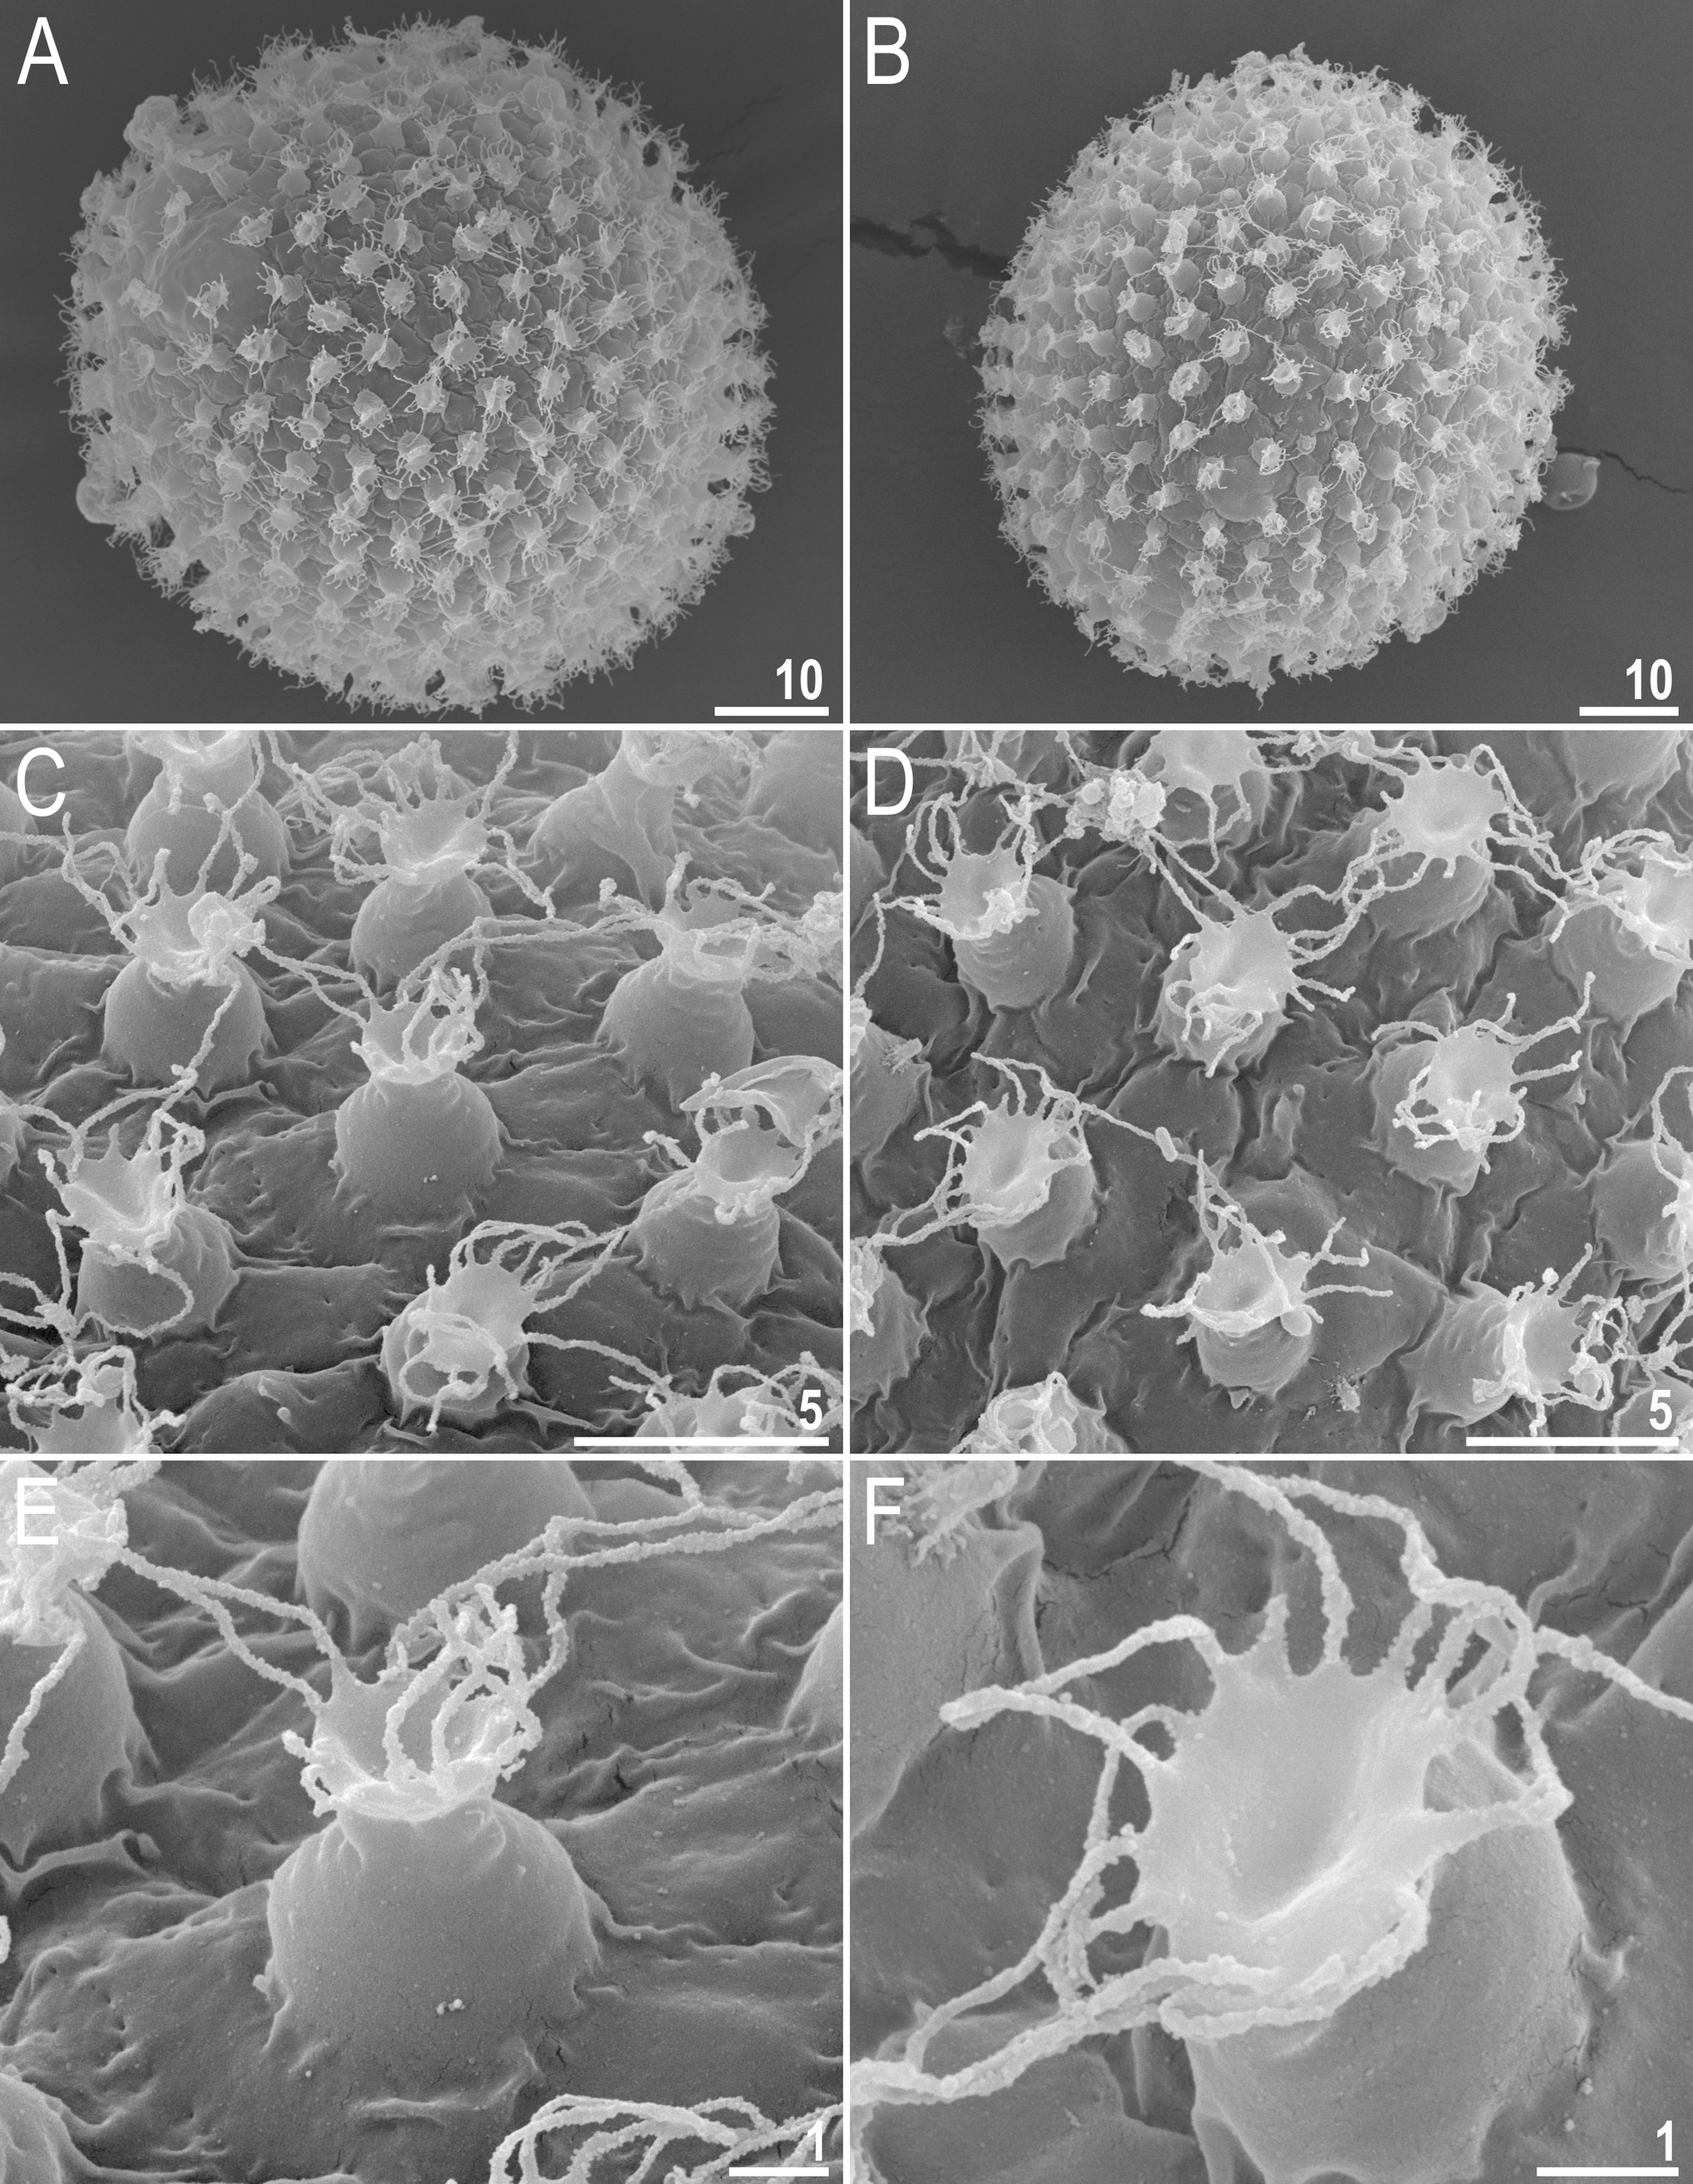 Fig 7. Macrobiotus shonaicus sp. nov.–egg chorion morphology seen in SEM. A–B–entire eggs with clearly visible flexible filaments on the egg processes; C–D–processes with filaments of various lengths and the surface between processes; and E–F–zoom on a single-egg process. Scale bars in μm. https://doi.org/10.1371/journal.pone.0192210.g007